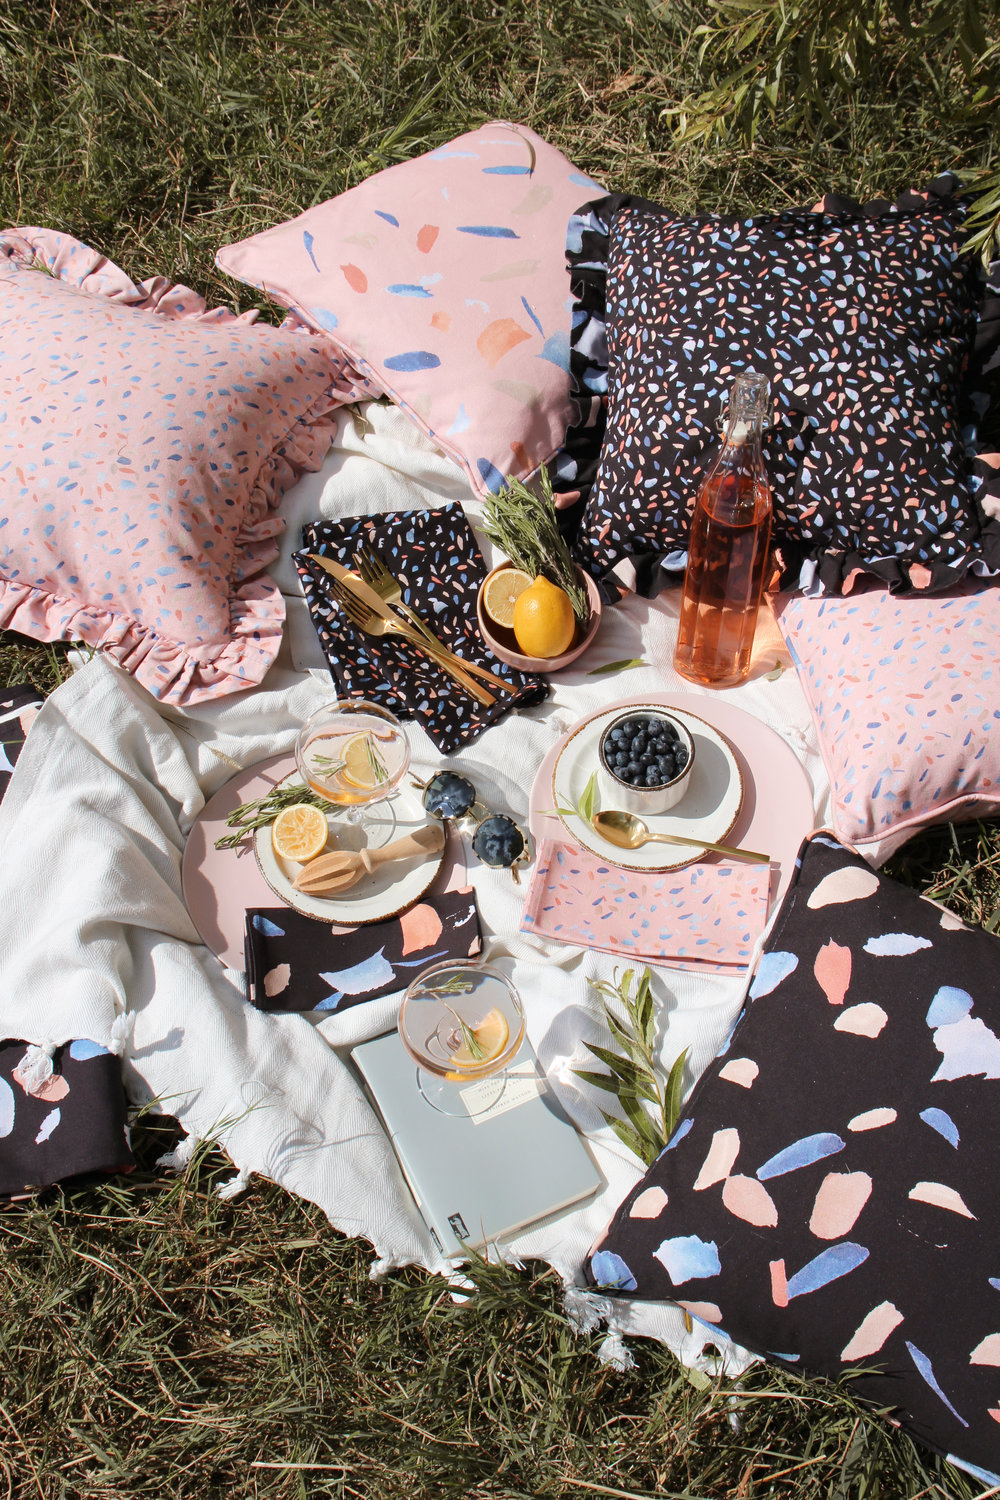 Black and pink picnic accessories for the summer